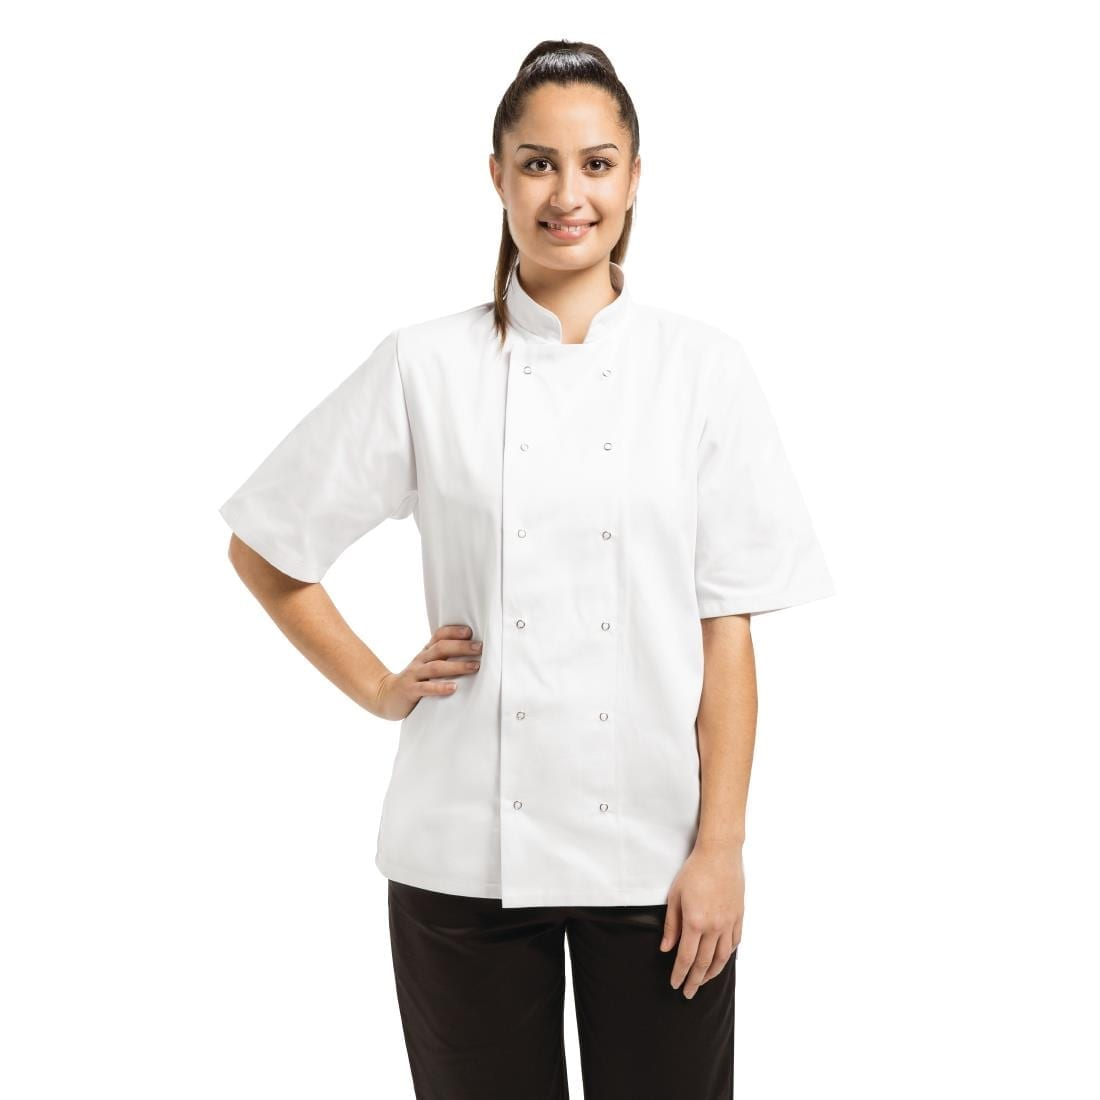 Whites Vegas Unisex Chef Jacket Short Sleeve White – XL